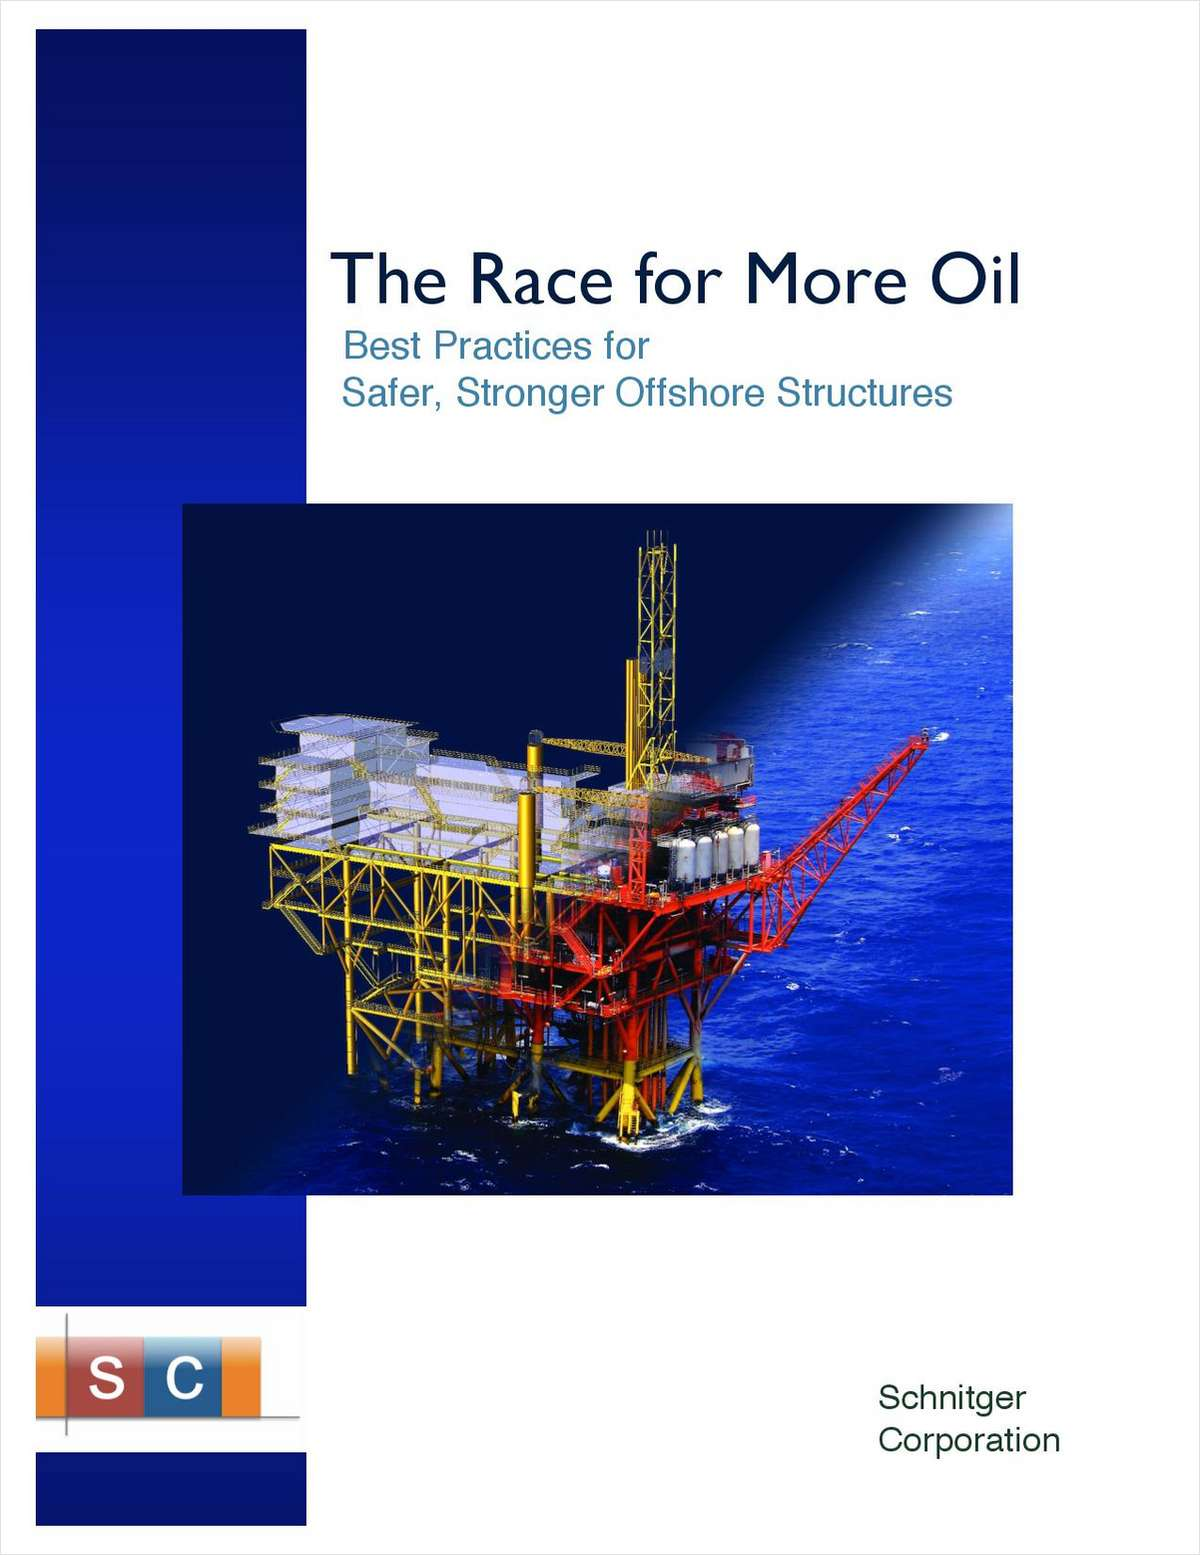 The Race for More Oil: Best Practices for Safer, Stronger Offshore Structures